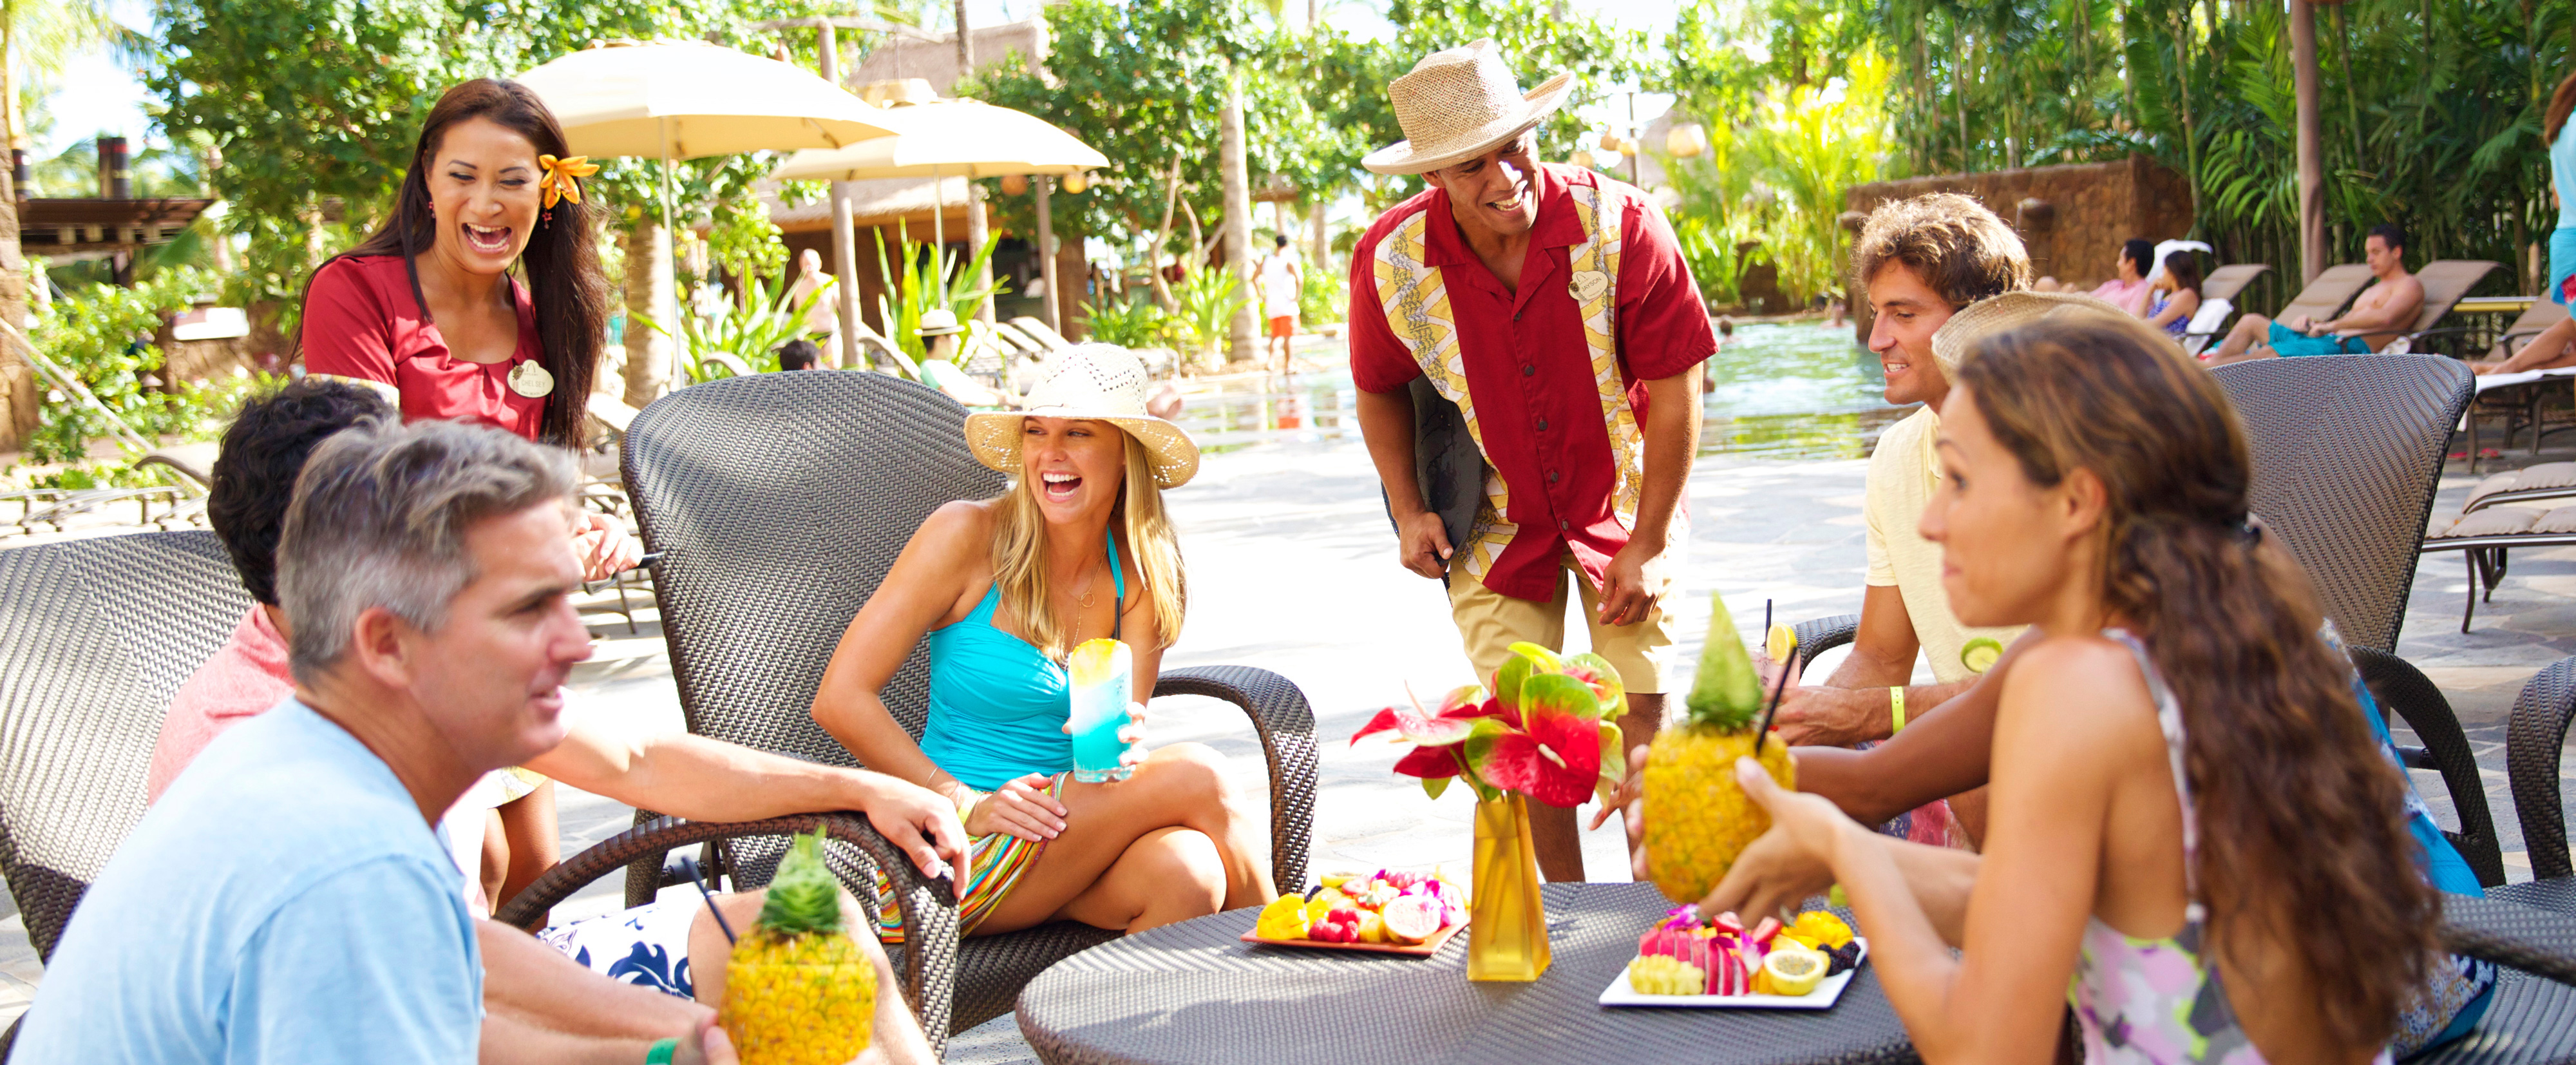 Two servers tend to 3 couples enjoying pineapple drinks and tropical fruit plates at a table near a pool